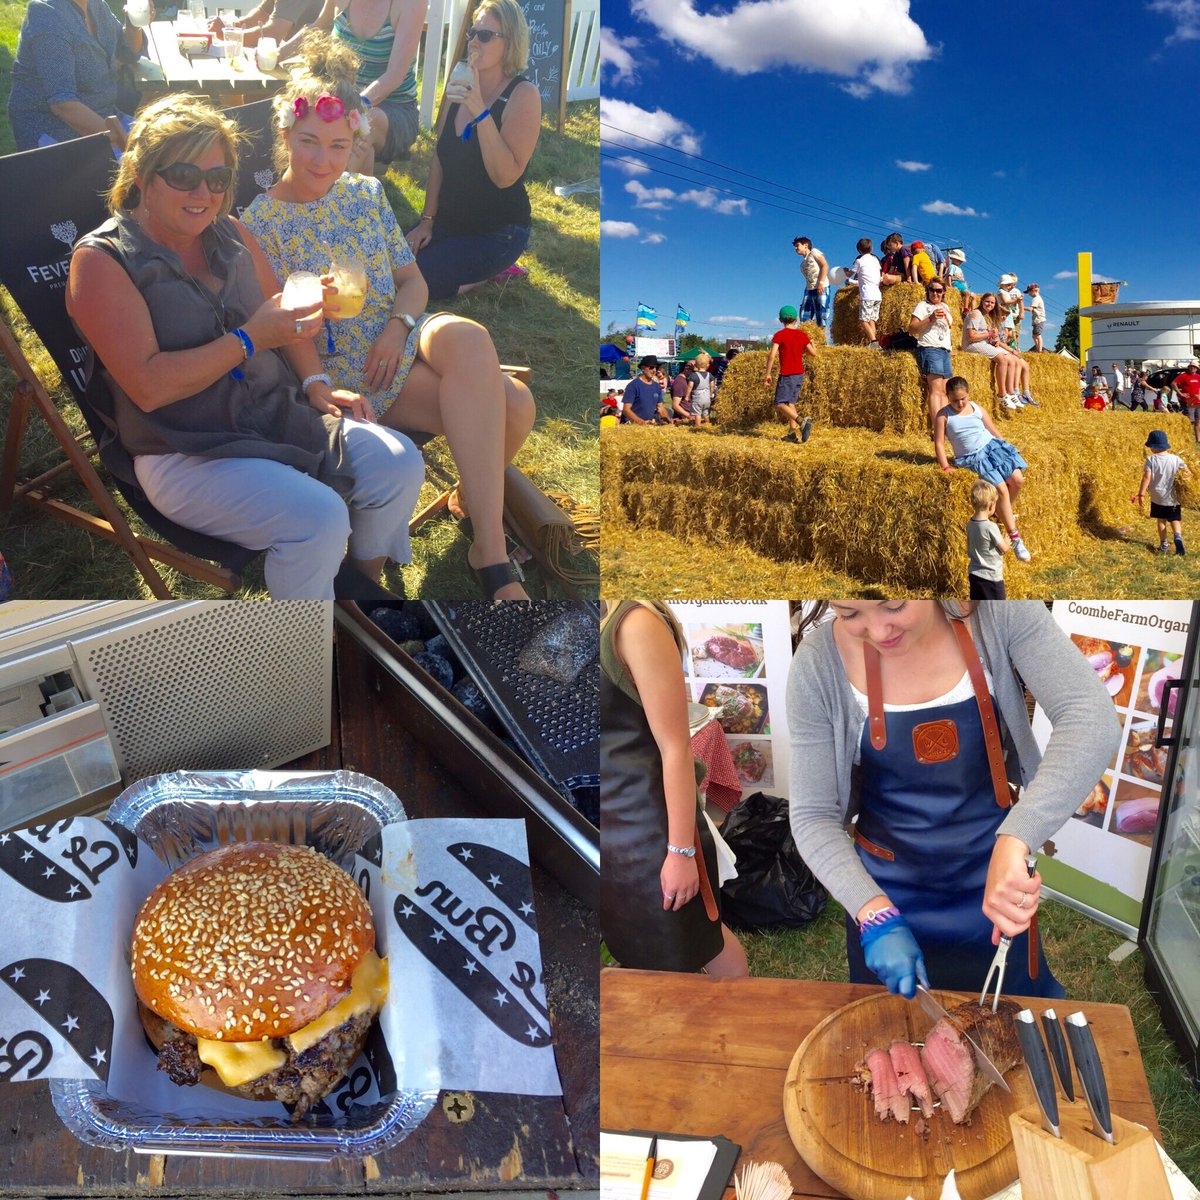 RT @thebigfeastival: Who is excited for day two? We can't wait to get stuck into some great grub and summer tunes ???? #TheBigFeastival https:…